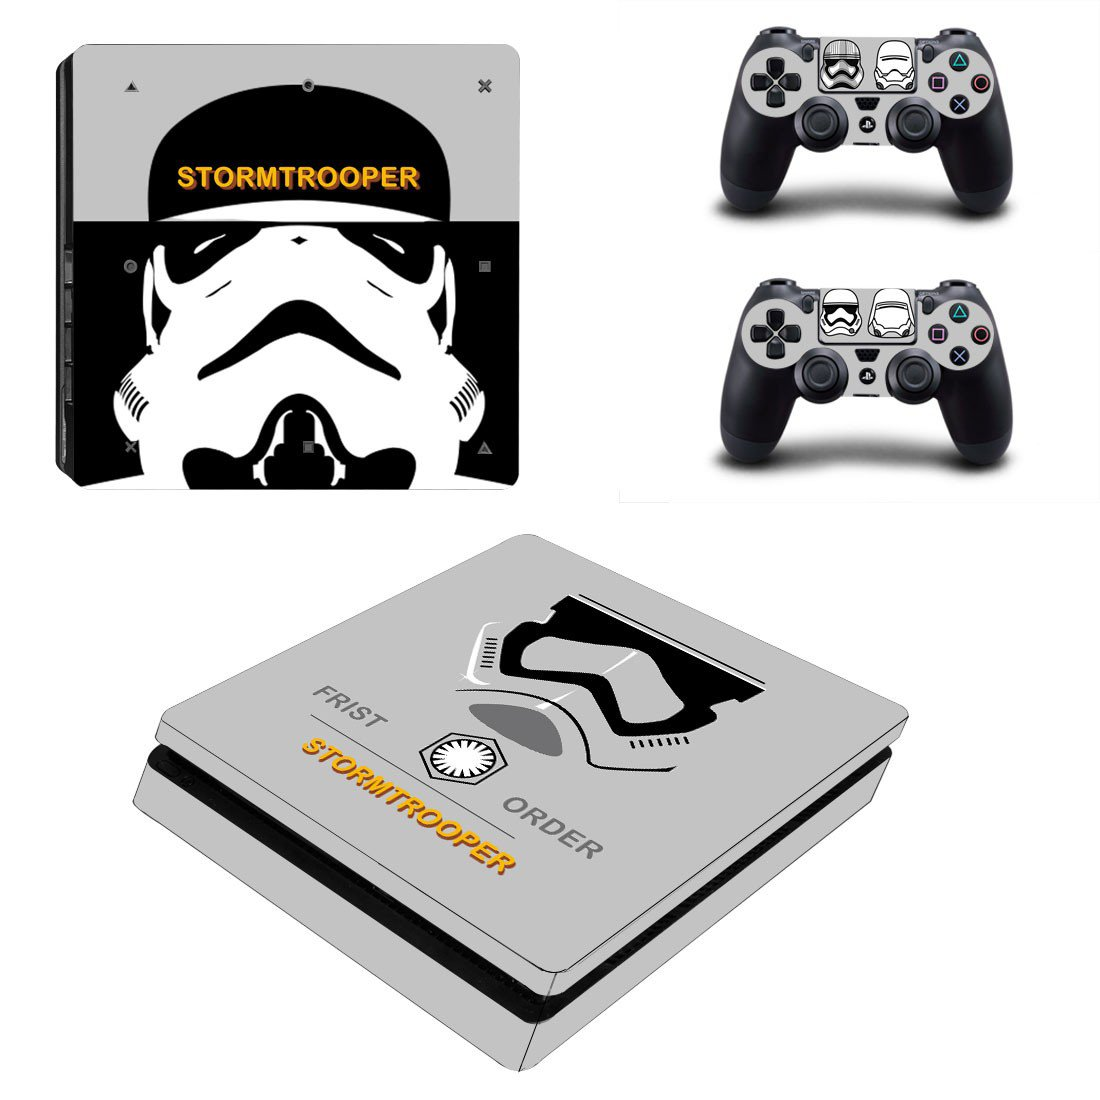 Star Wars Stormtrooper decal skin sticker for PS4 Slim console and controllers